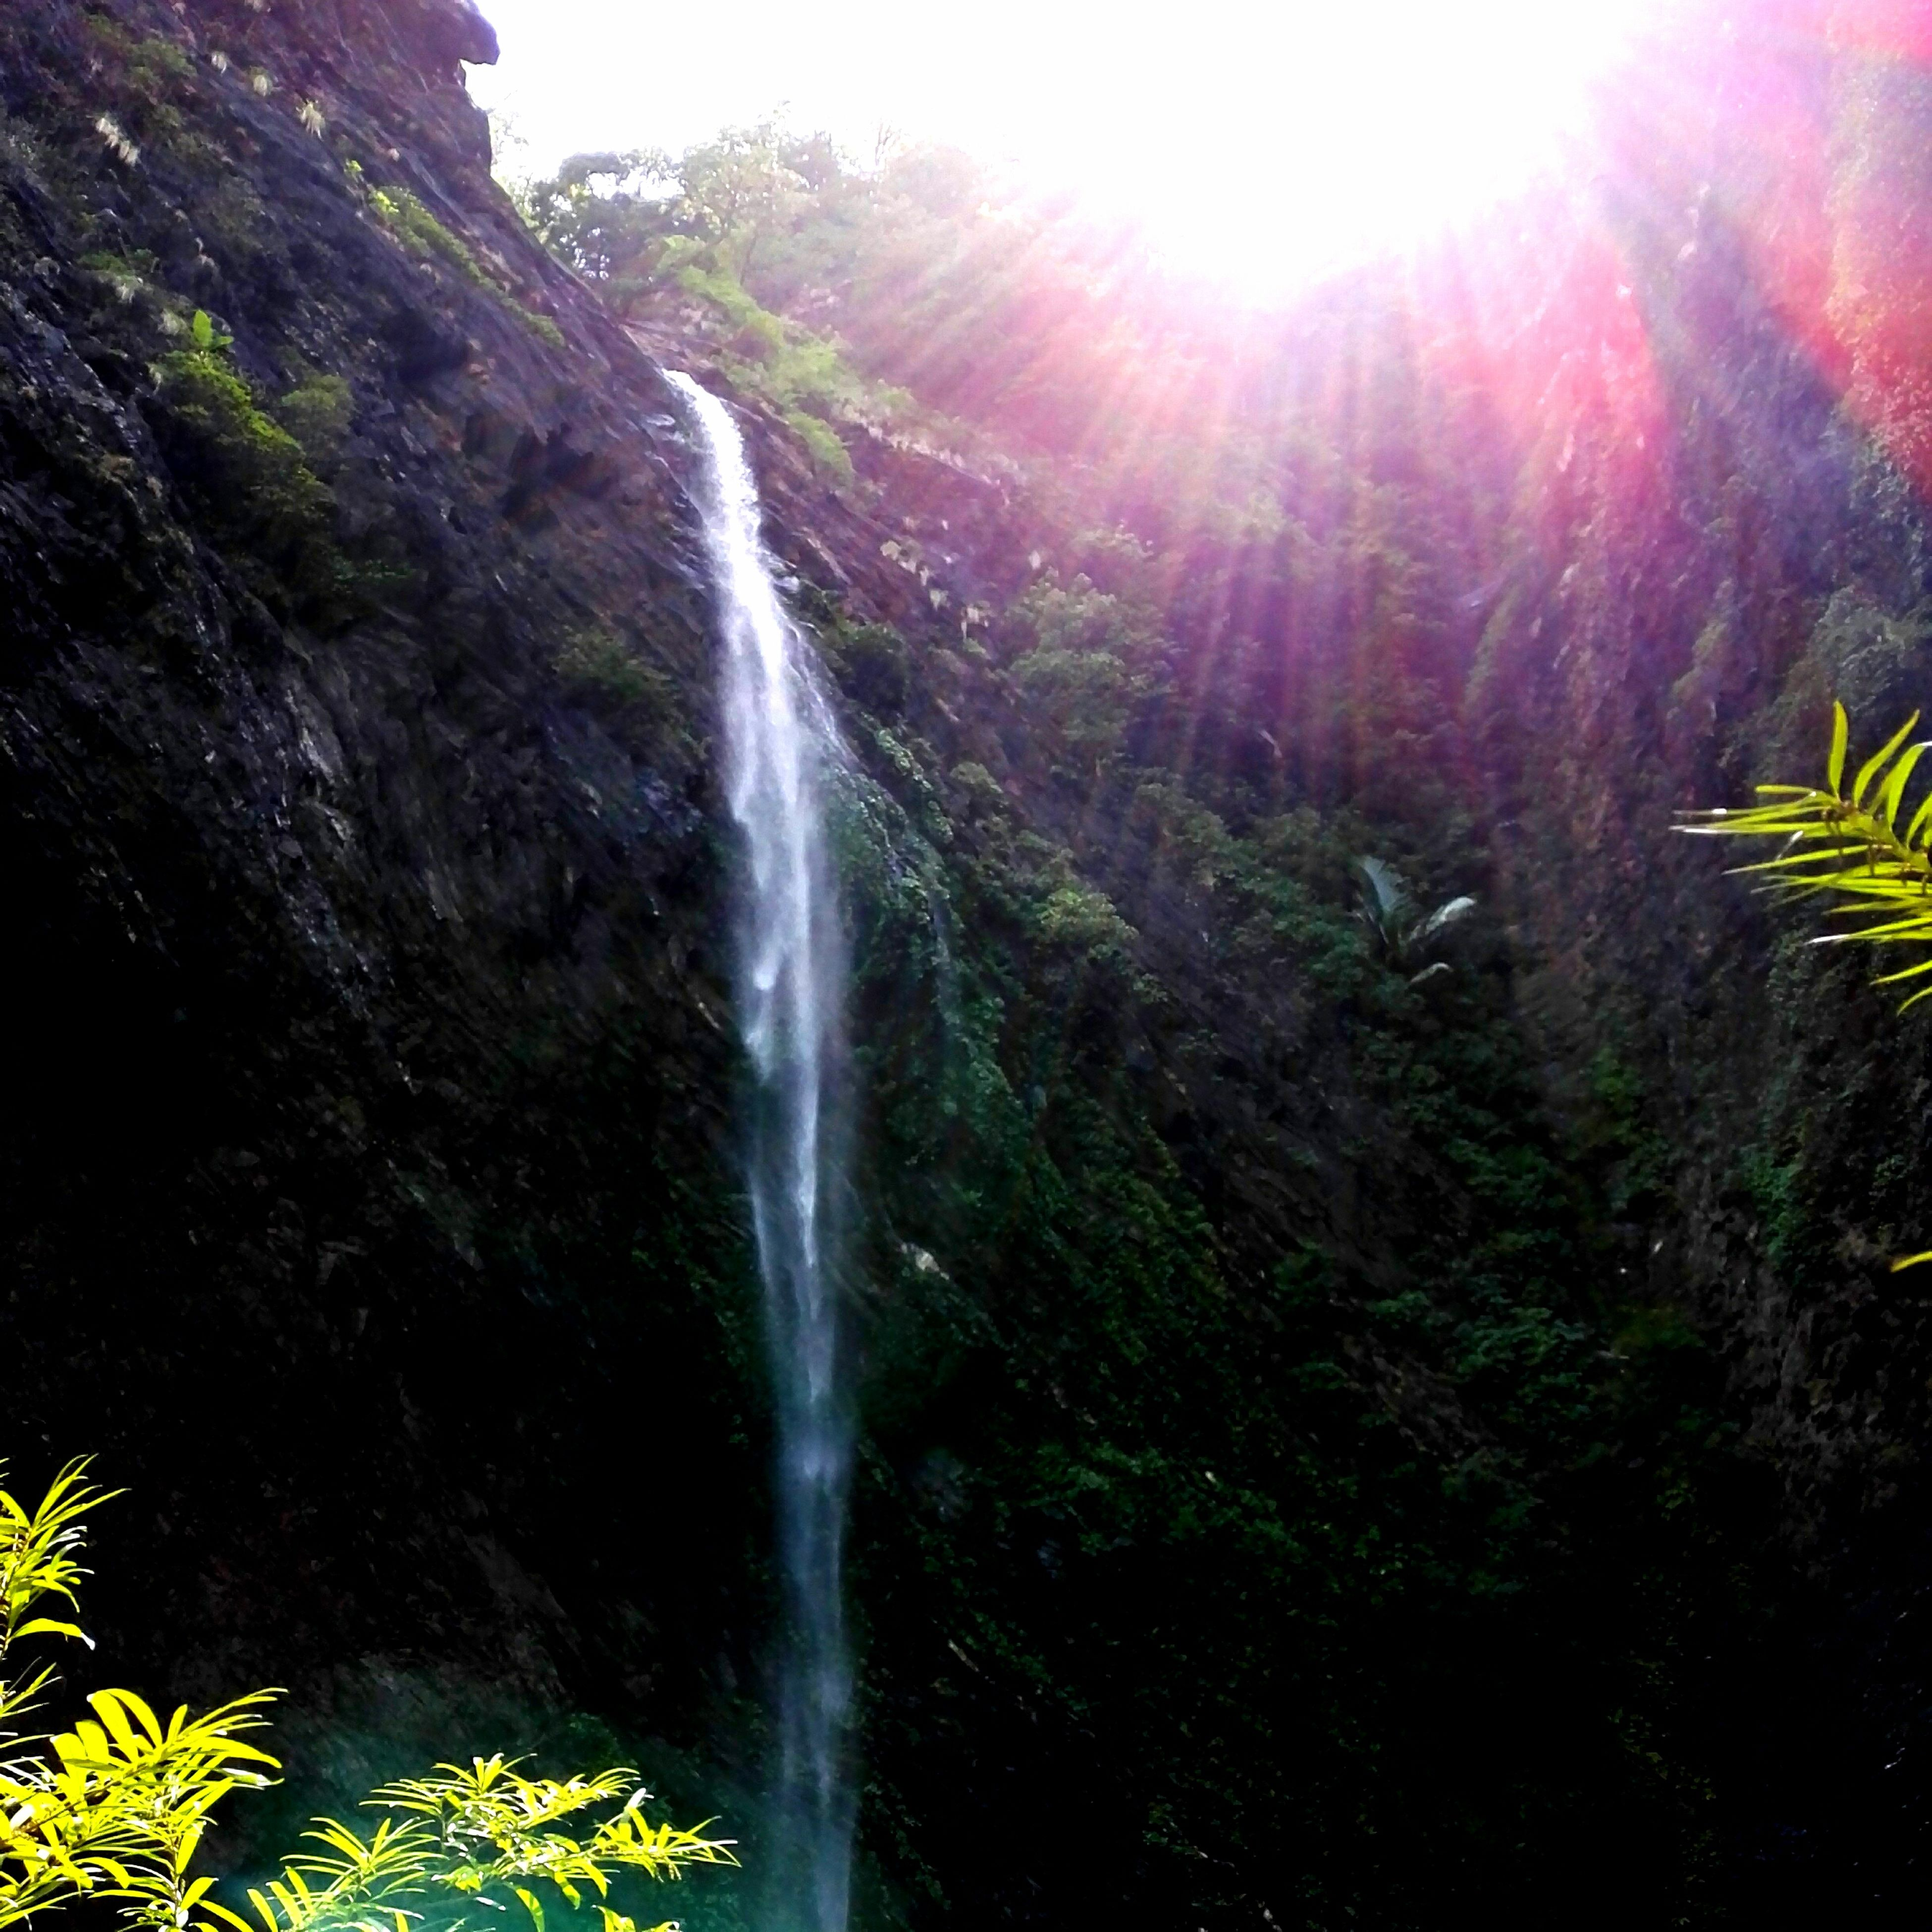 God's Magnificent Creation Kudlu Falls Sunshine ☀ Great Day  Hiking India With Friends Bonding Friendship Nature Great Time  Colour Of Life